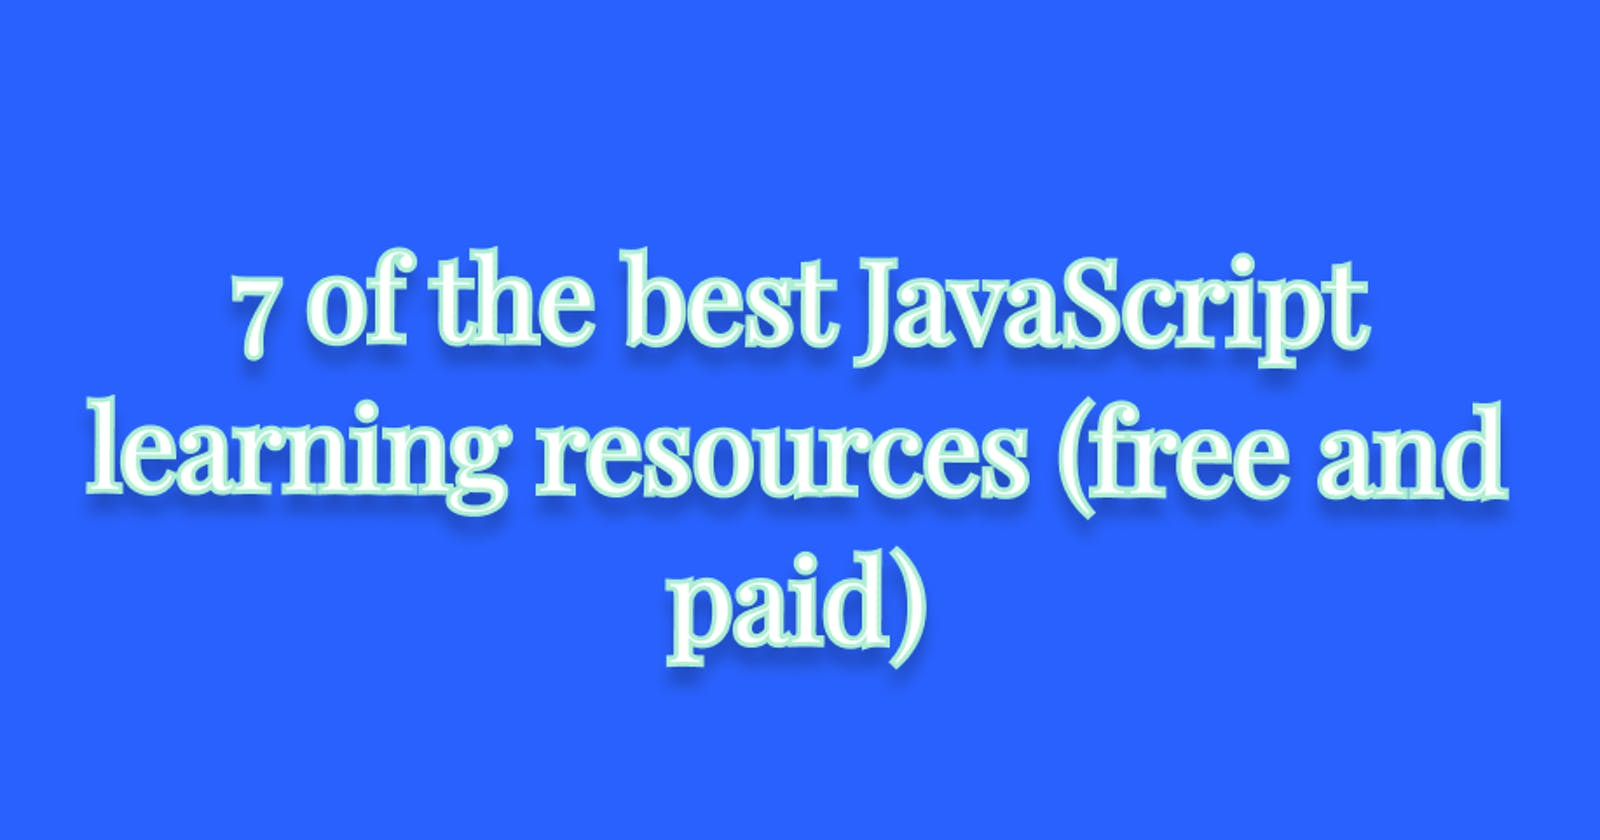 7 of the best JavaScript learning resources (free and paid)